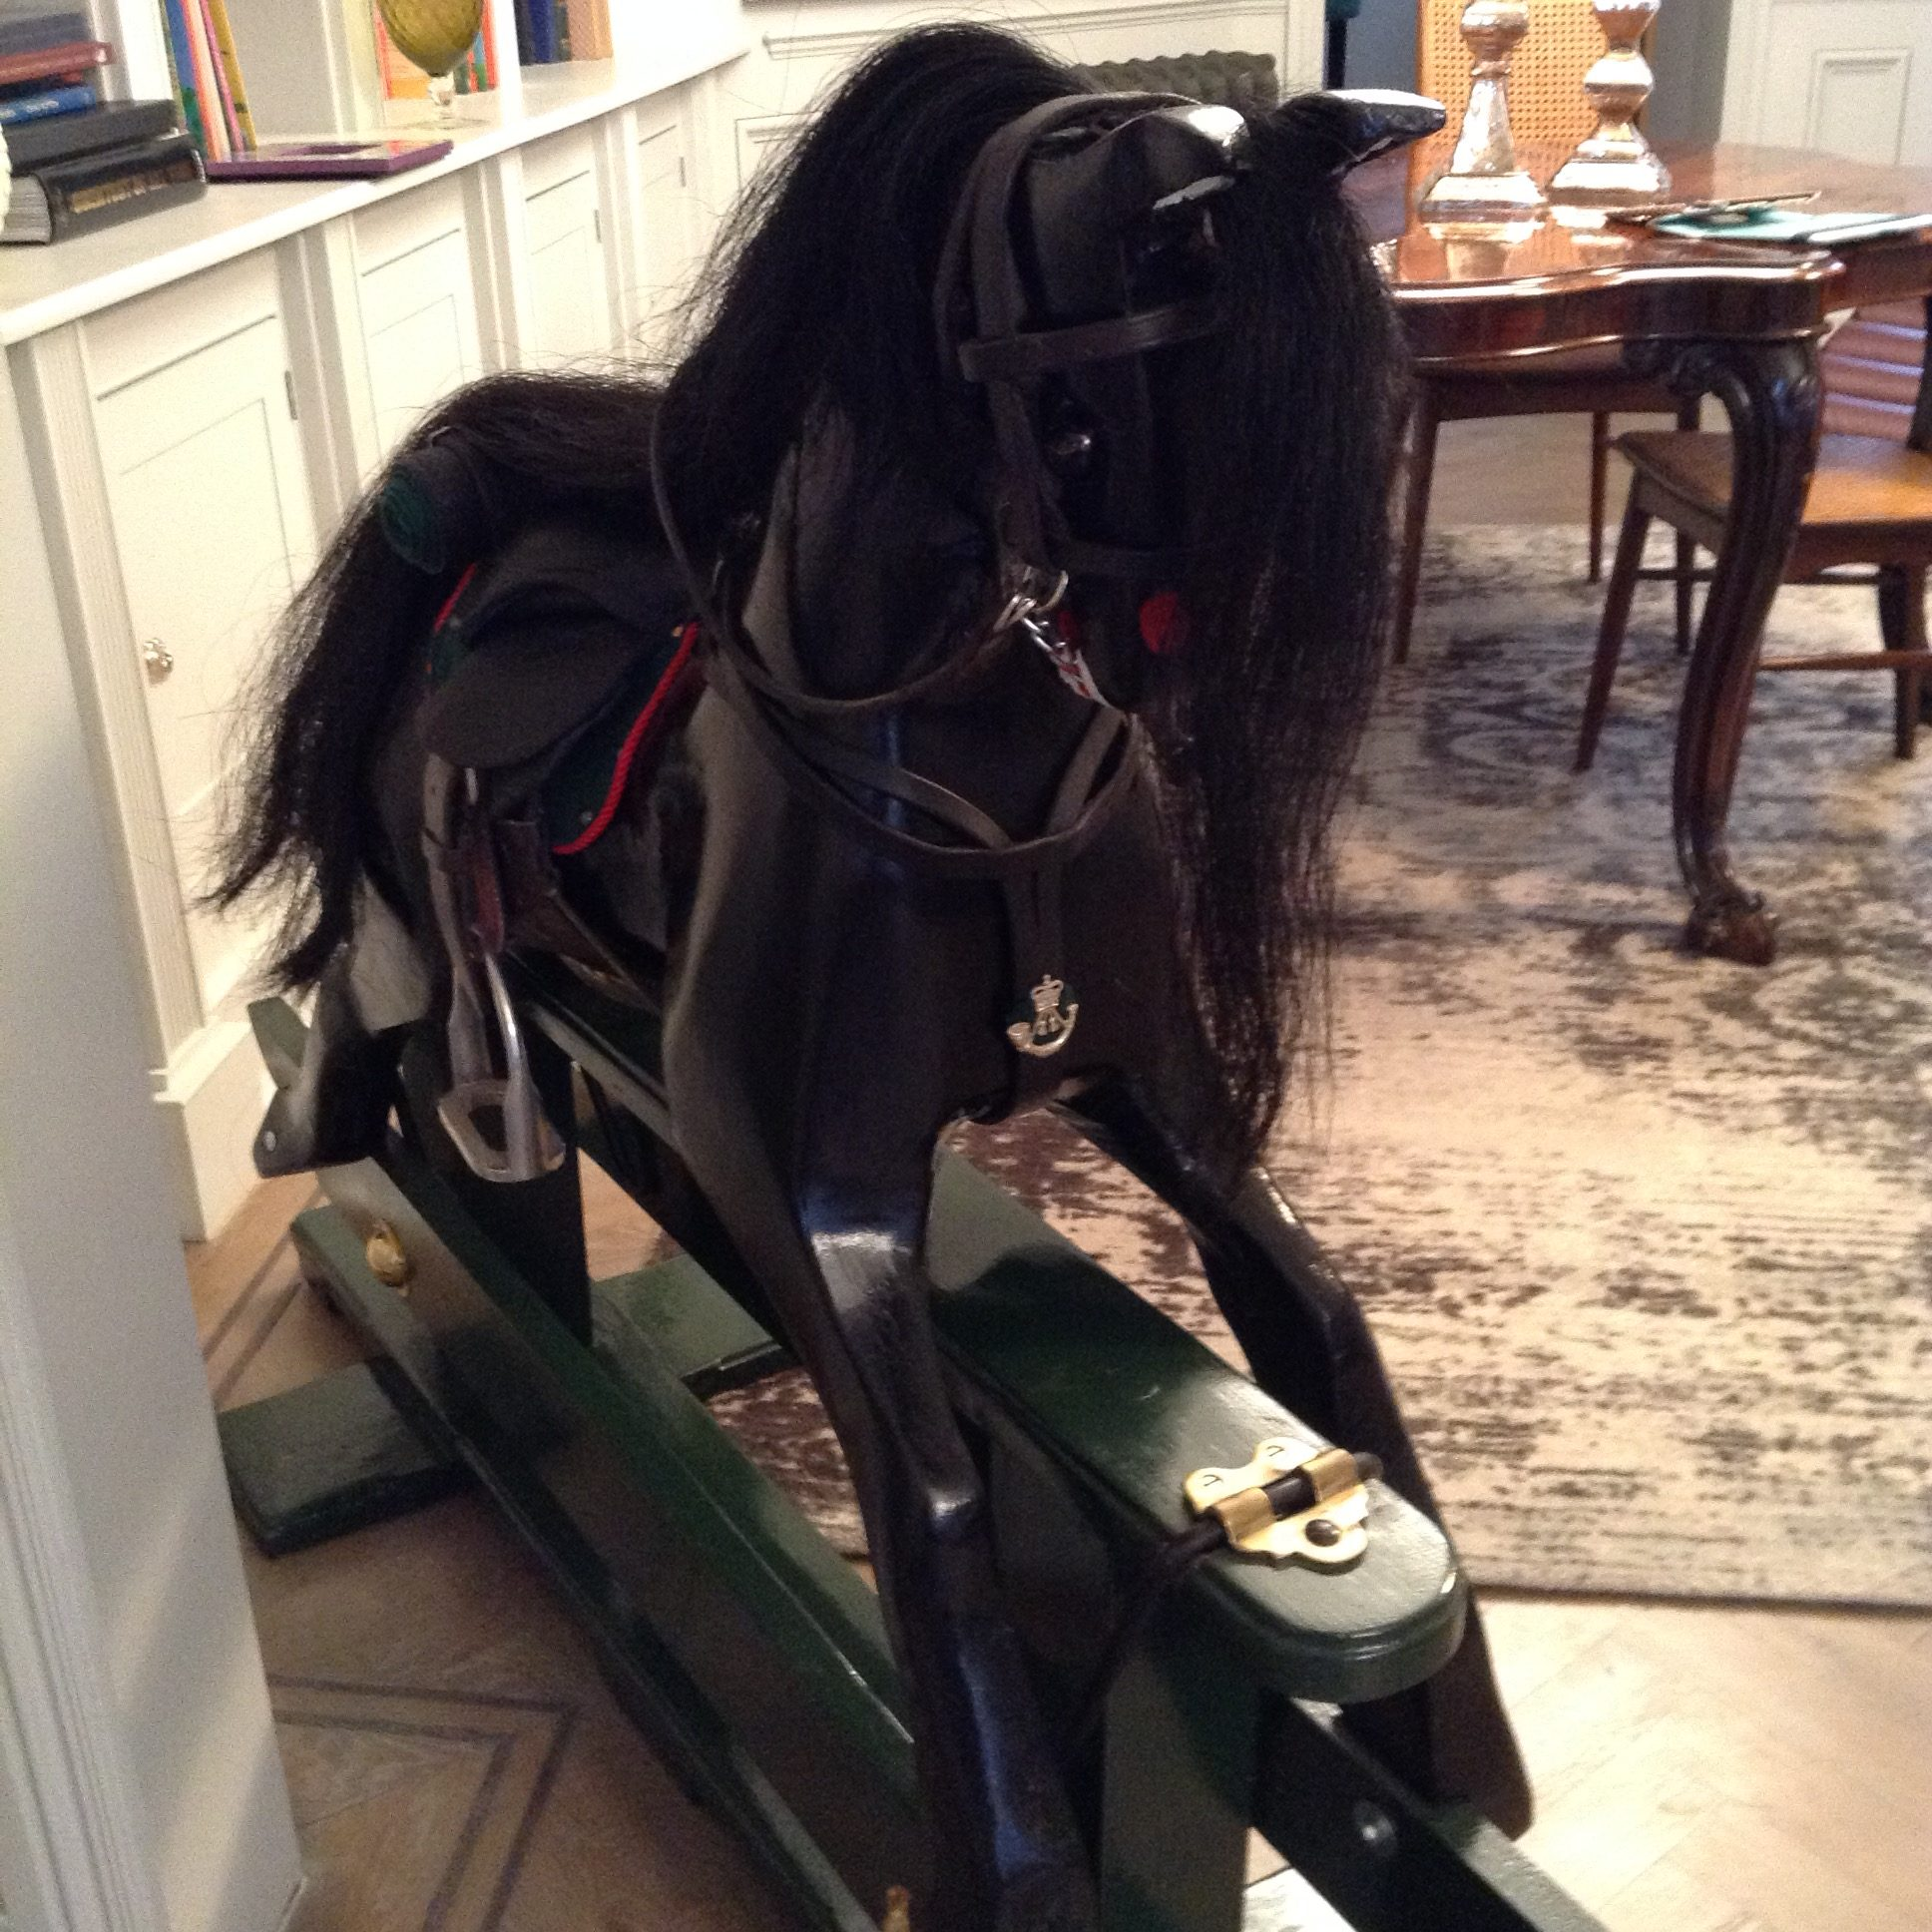 just rifles, rocking horse, hand-made, antique, charity, buy it now, british army, rifles